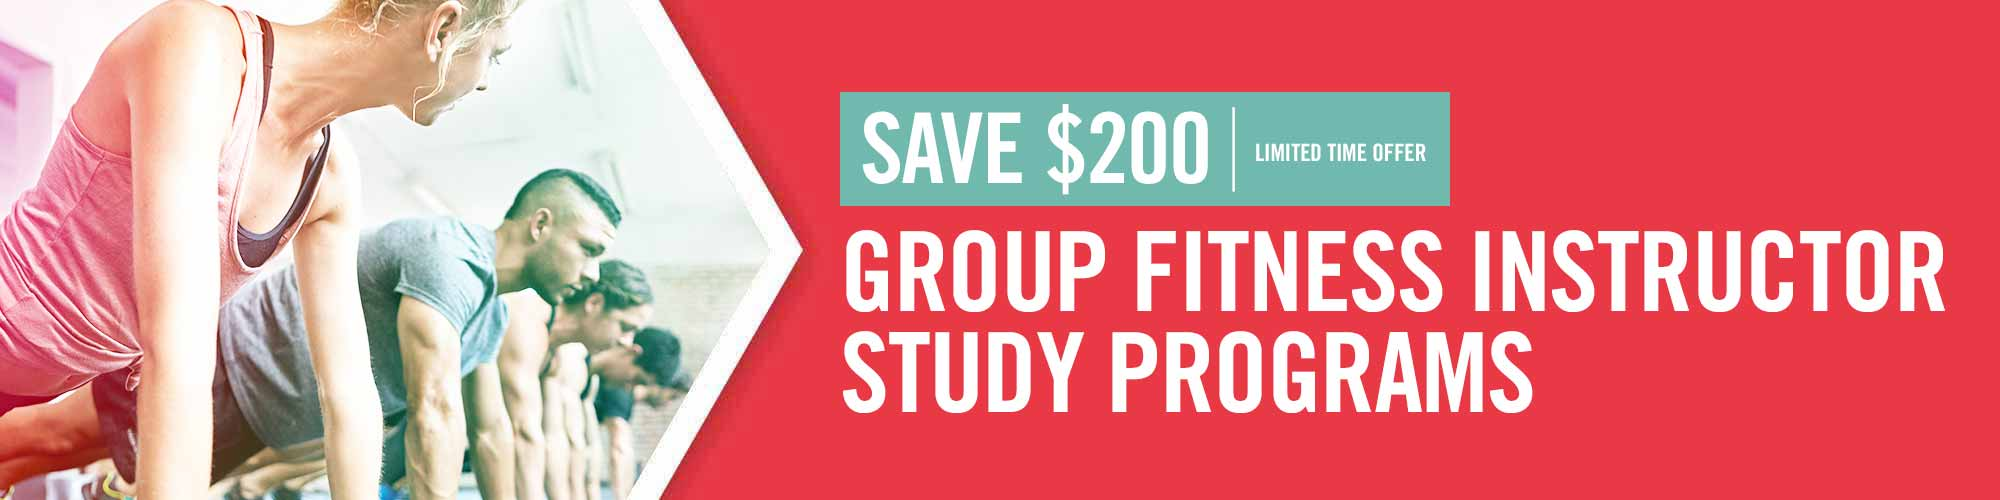 Group Fitness Instructor Study Programs